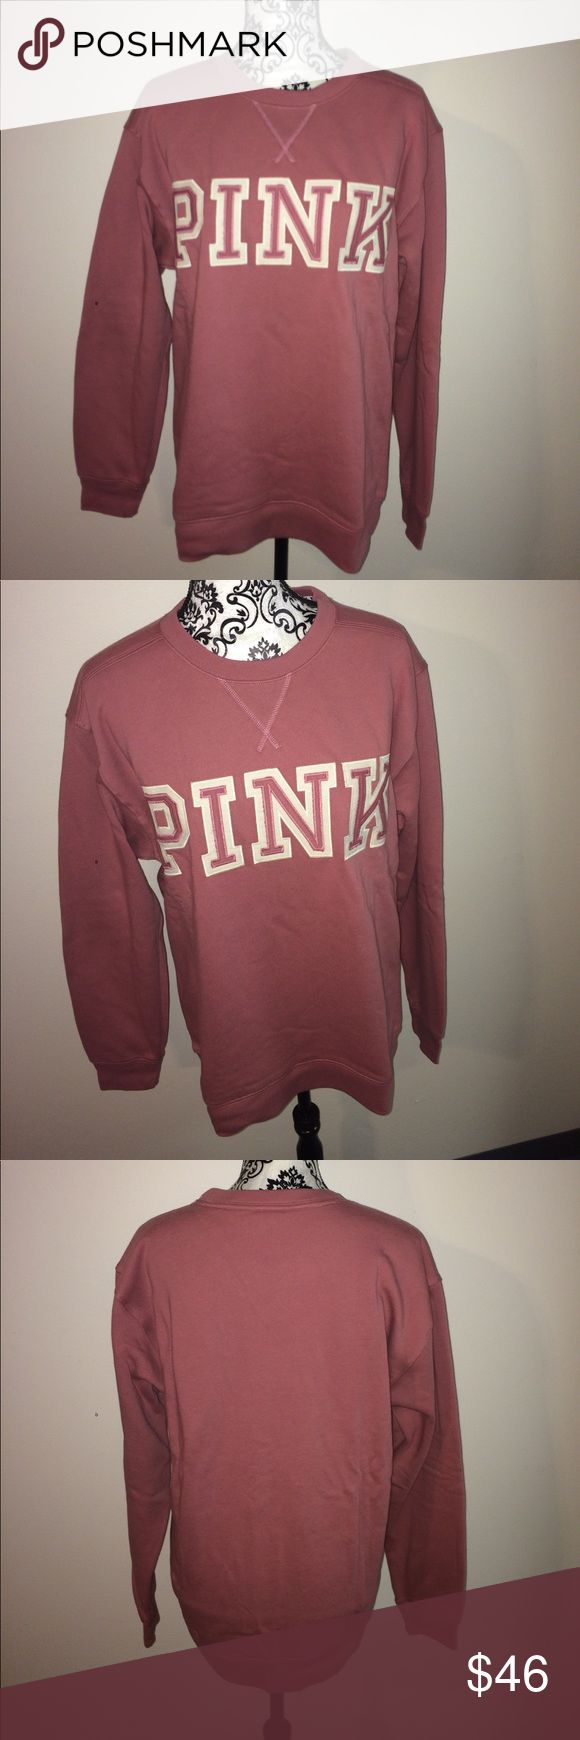 VS PINK soft begonia Crewneck Brand new! As you can tell from the photo of the inside, it's still nice and fuzzy and hasn't been worn or washed! It was an online order for a Christmas present and I spent over $70 on this because I had it wrapped and paid extra for shipping and taxes. But crewnecks retail for $46.95 on their website. True color is the first few photos on the mannequin. Size medium & oversized. I have the same one in gray and it's my favorite sweatshirt. Stickers are free with…